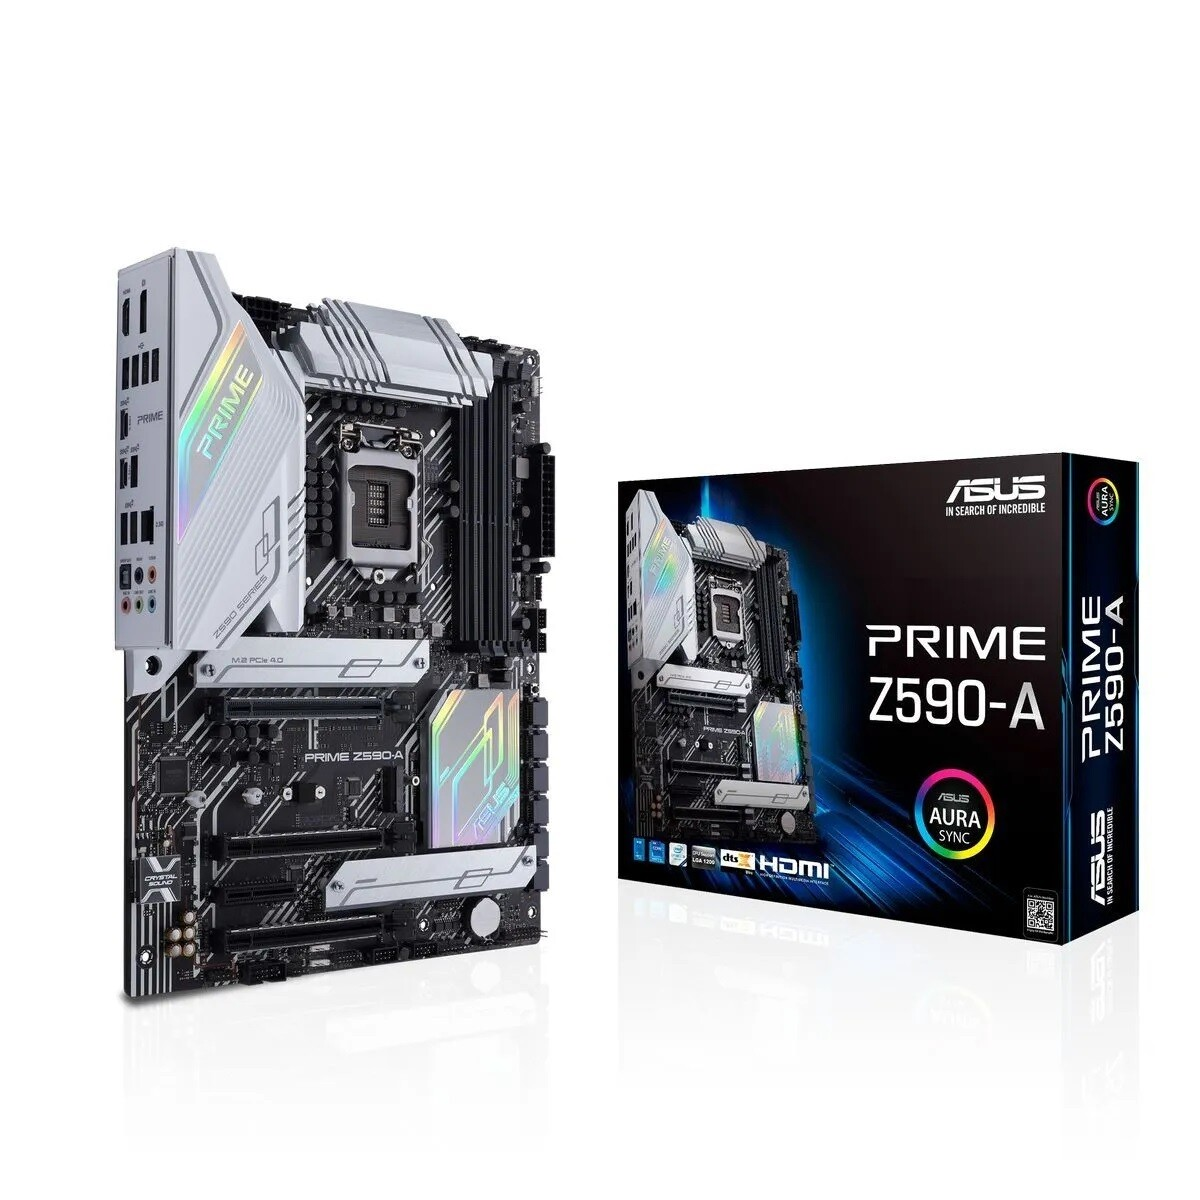 ASUS PRIME Z590-A ATX motherboard with PCIe® 4.0, three M.2 slots, 16 DrMOS power stages, HDMI®, DisplayPort™, SATA 6 Gbps, Intel® 2.5 Gb Ethernet, USB 3.2 Gen 2x2 Type-C®, front panel (LGA 1200)